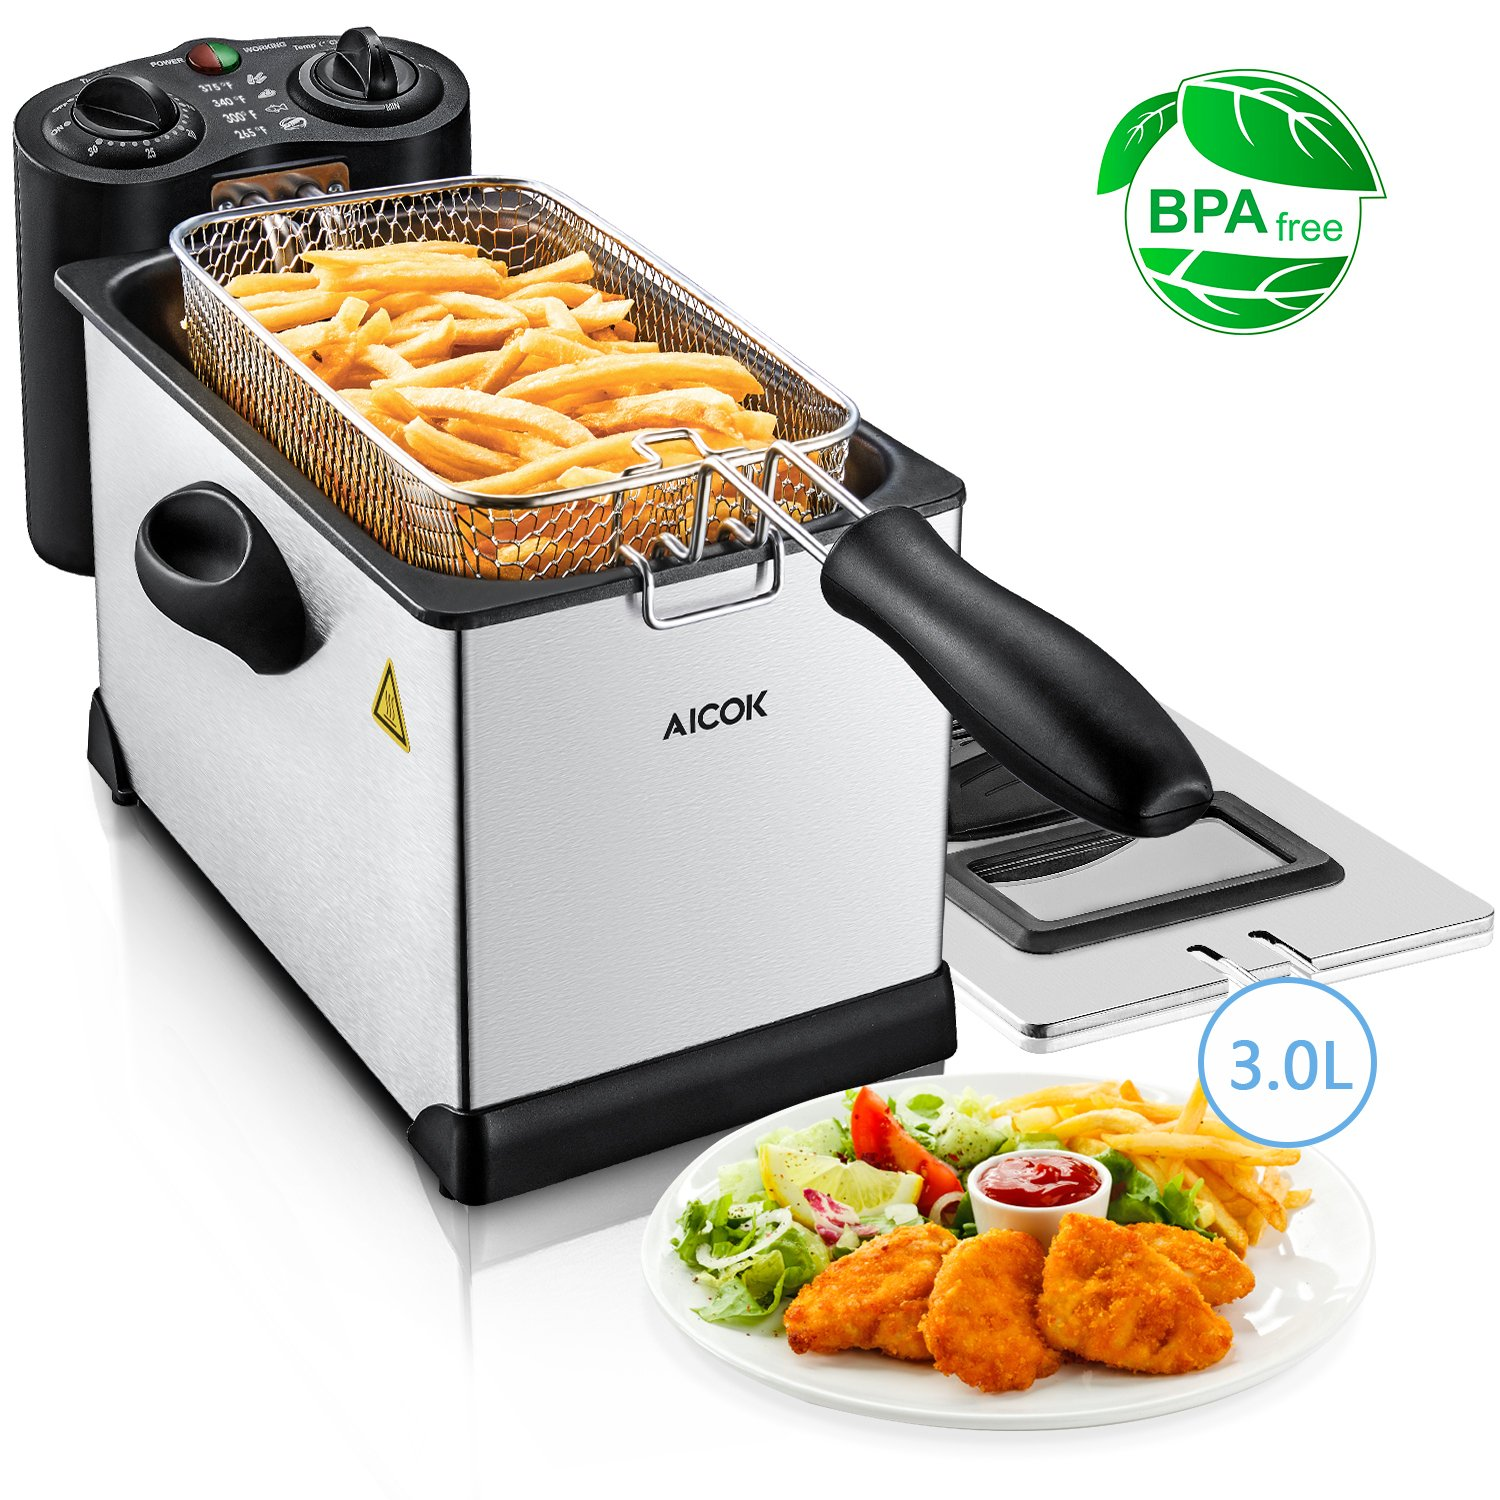 Deep Fryer with Basket, Aicok, Easy to Clean, Stainless Steel Electric Oil Deep Fryer Machine with Adjustable Temperature & Timer, Perfect for Fries, Chicken, Shrimp, Fully Removable, 3 Liter, 1700W